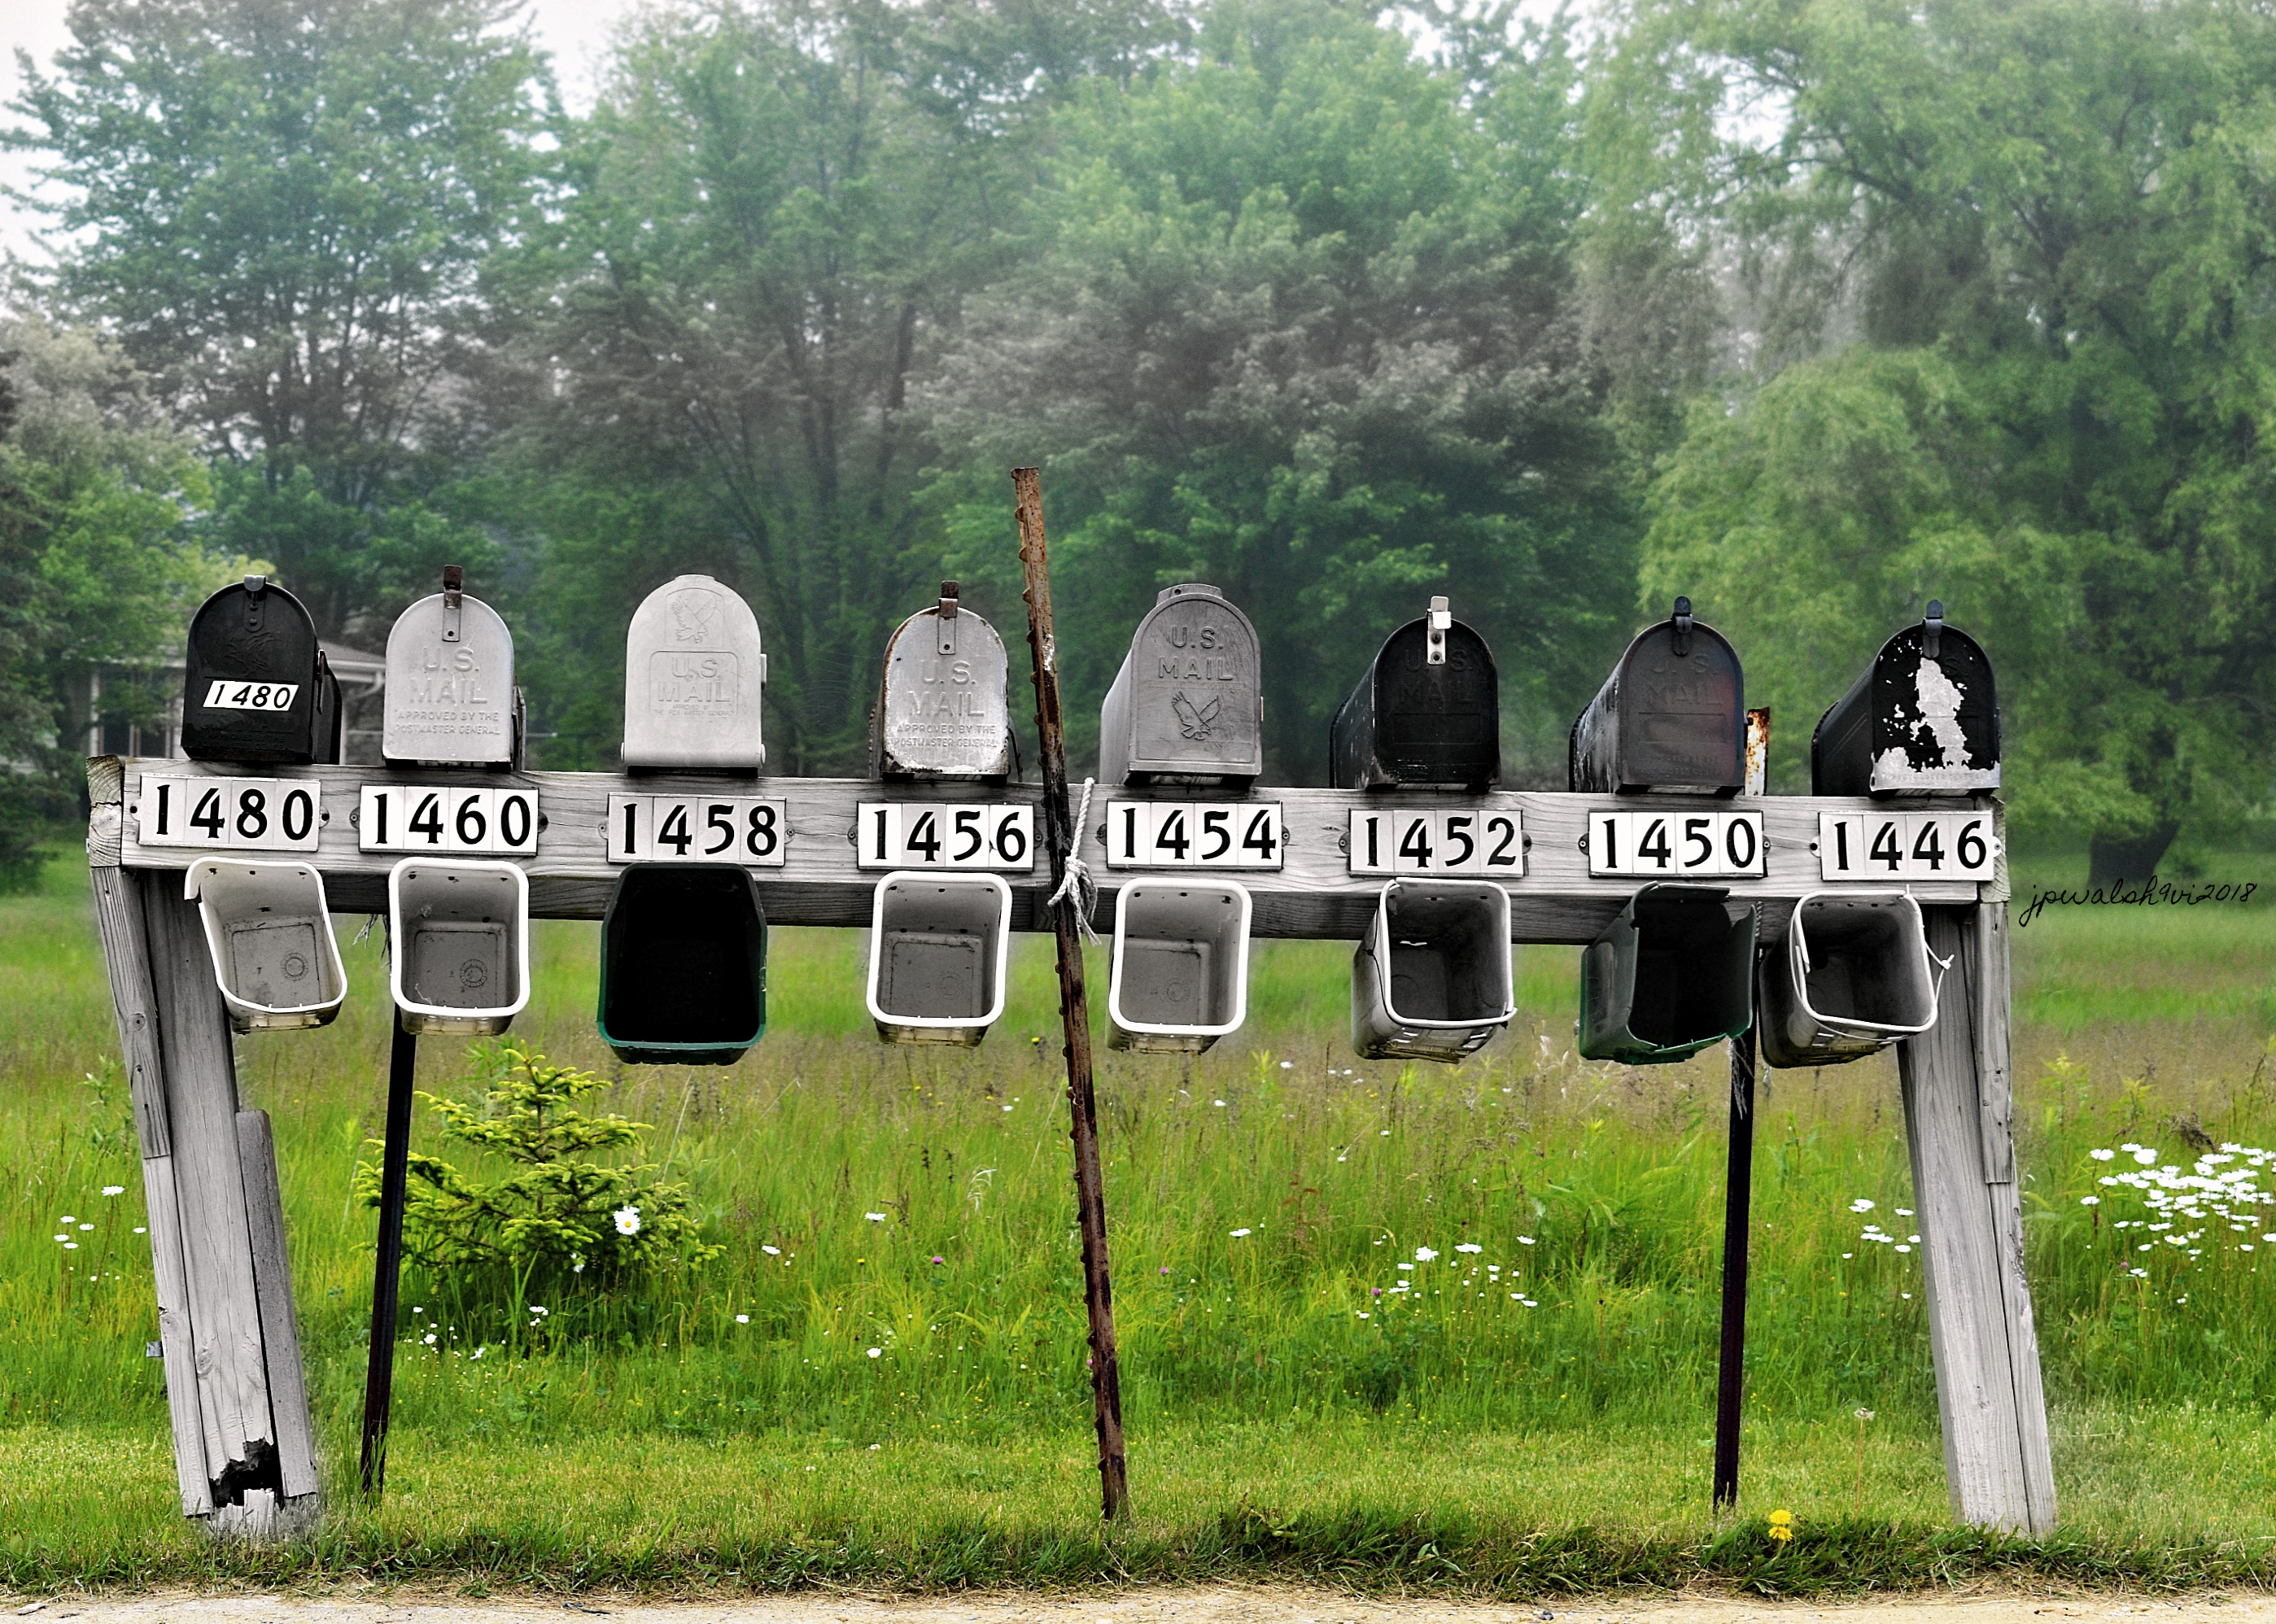 Mailboxes, Ozaukee Co., Wisconsin. June 9, 2018.